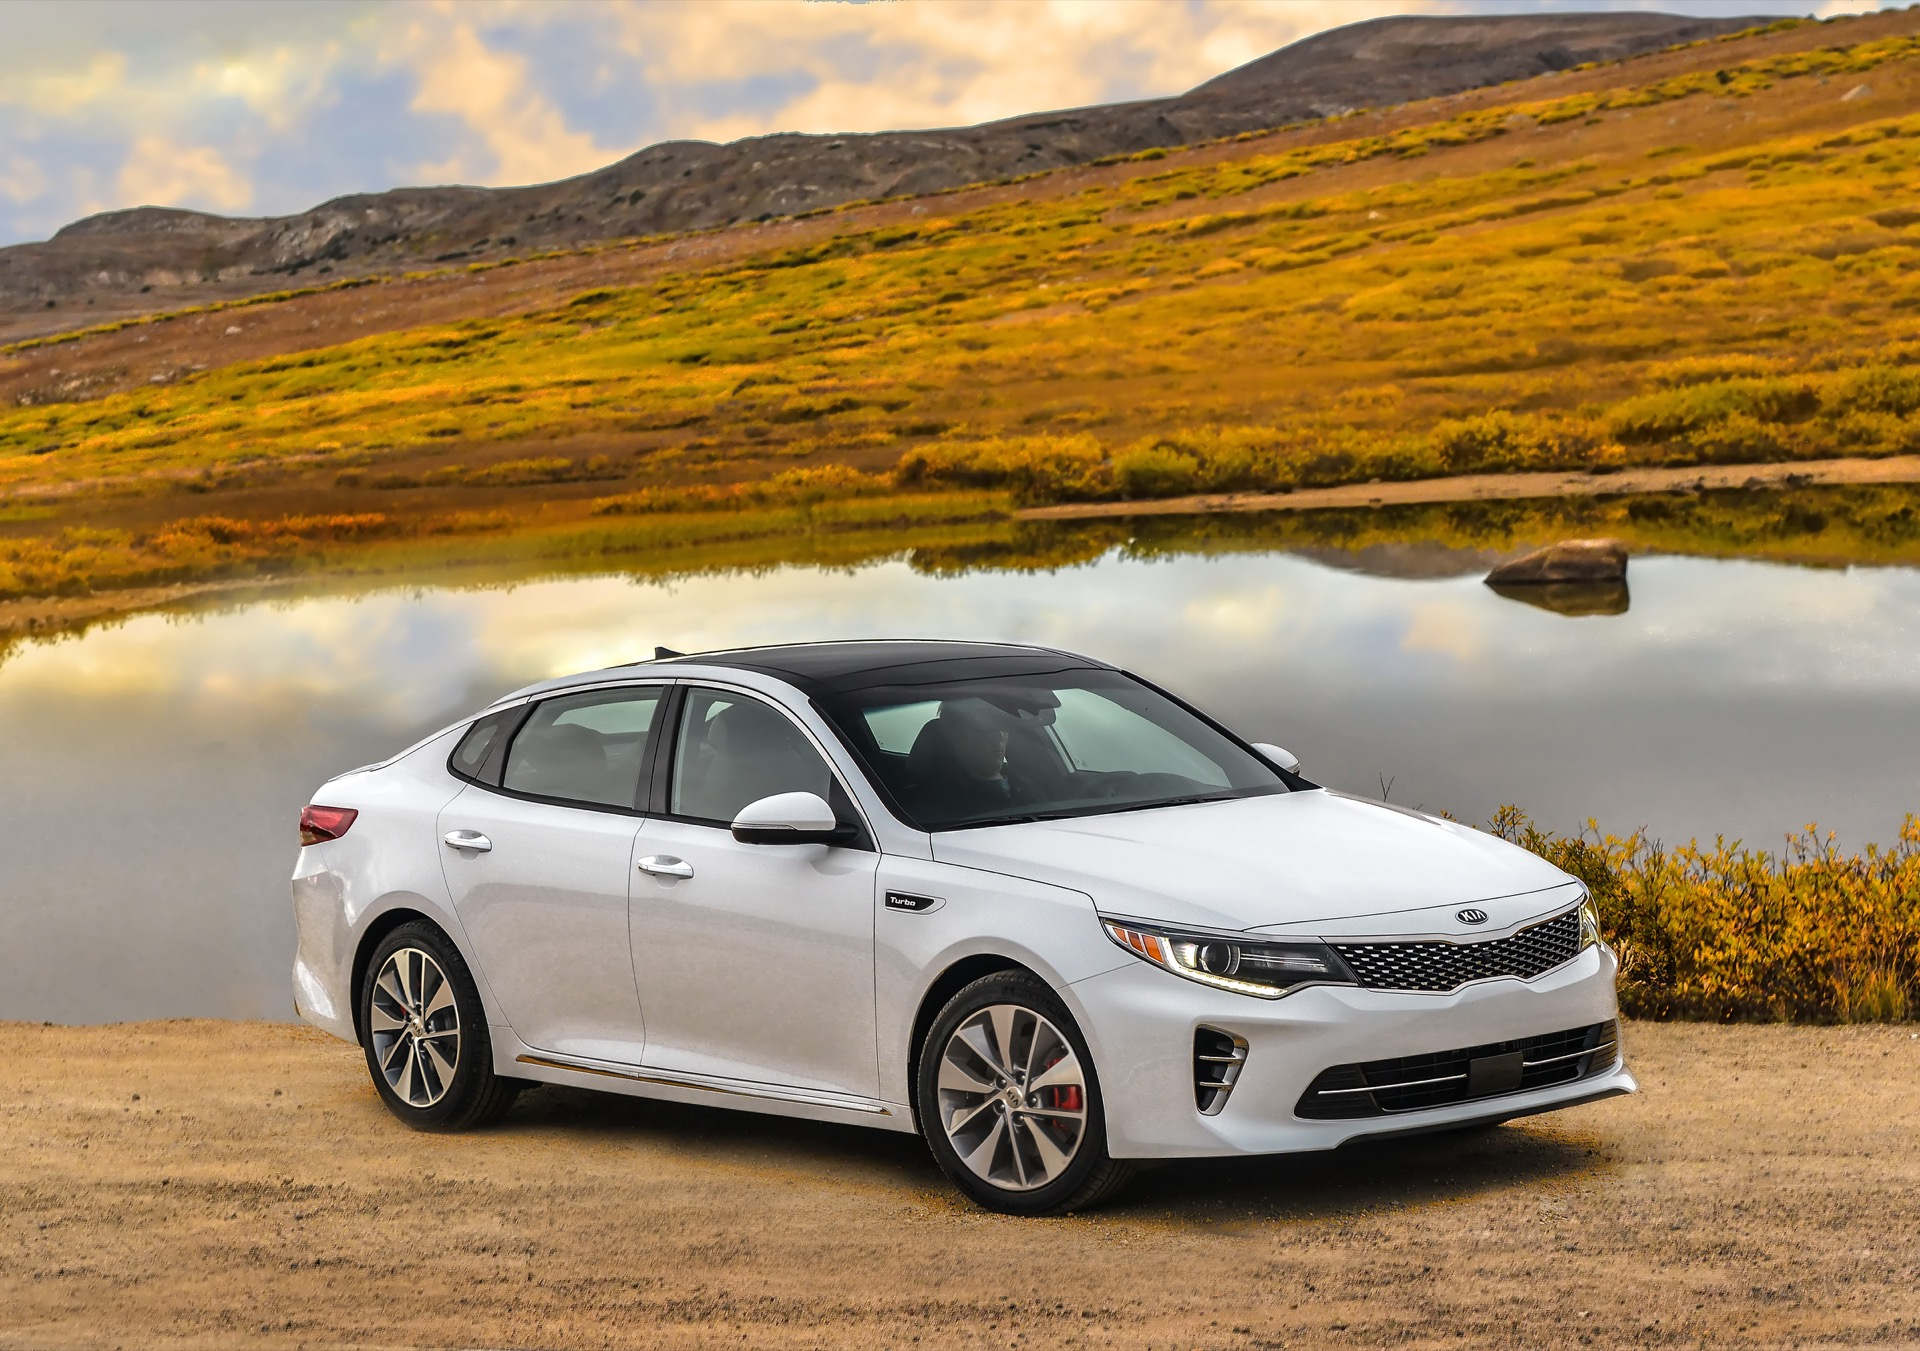 2016 Kia Optima Quality Review The Car Connection